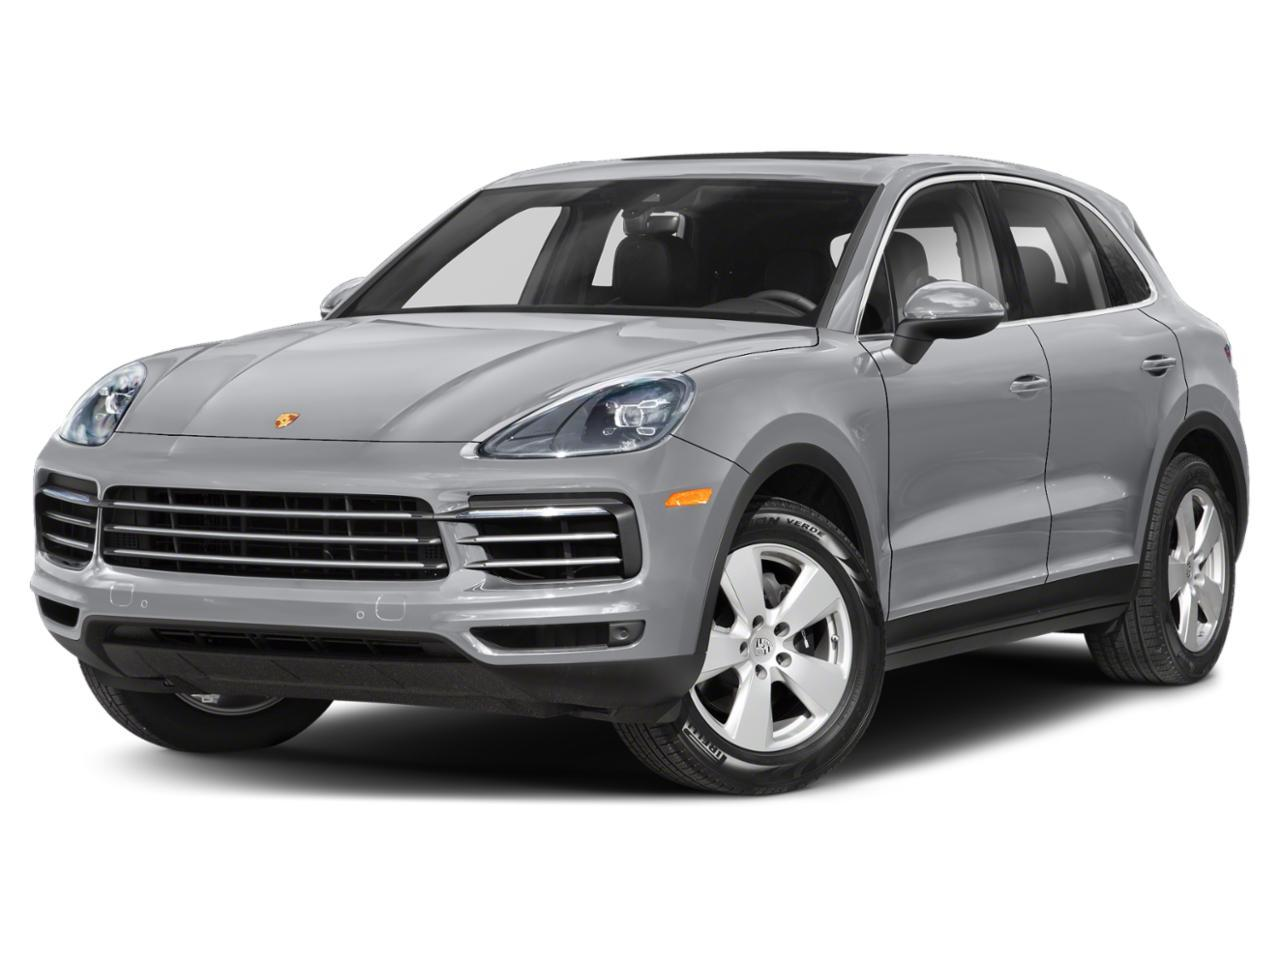 2019 Porsche Cayenne Vehicle Photo in Ocala, FL 34474